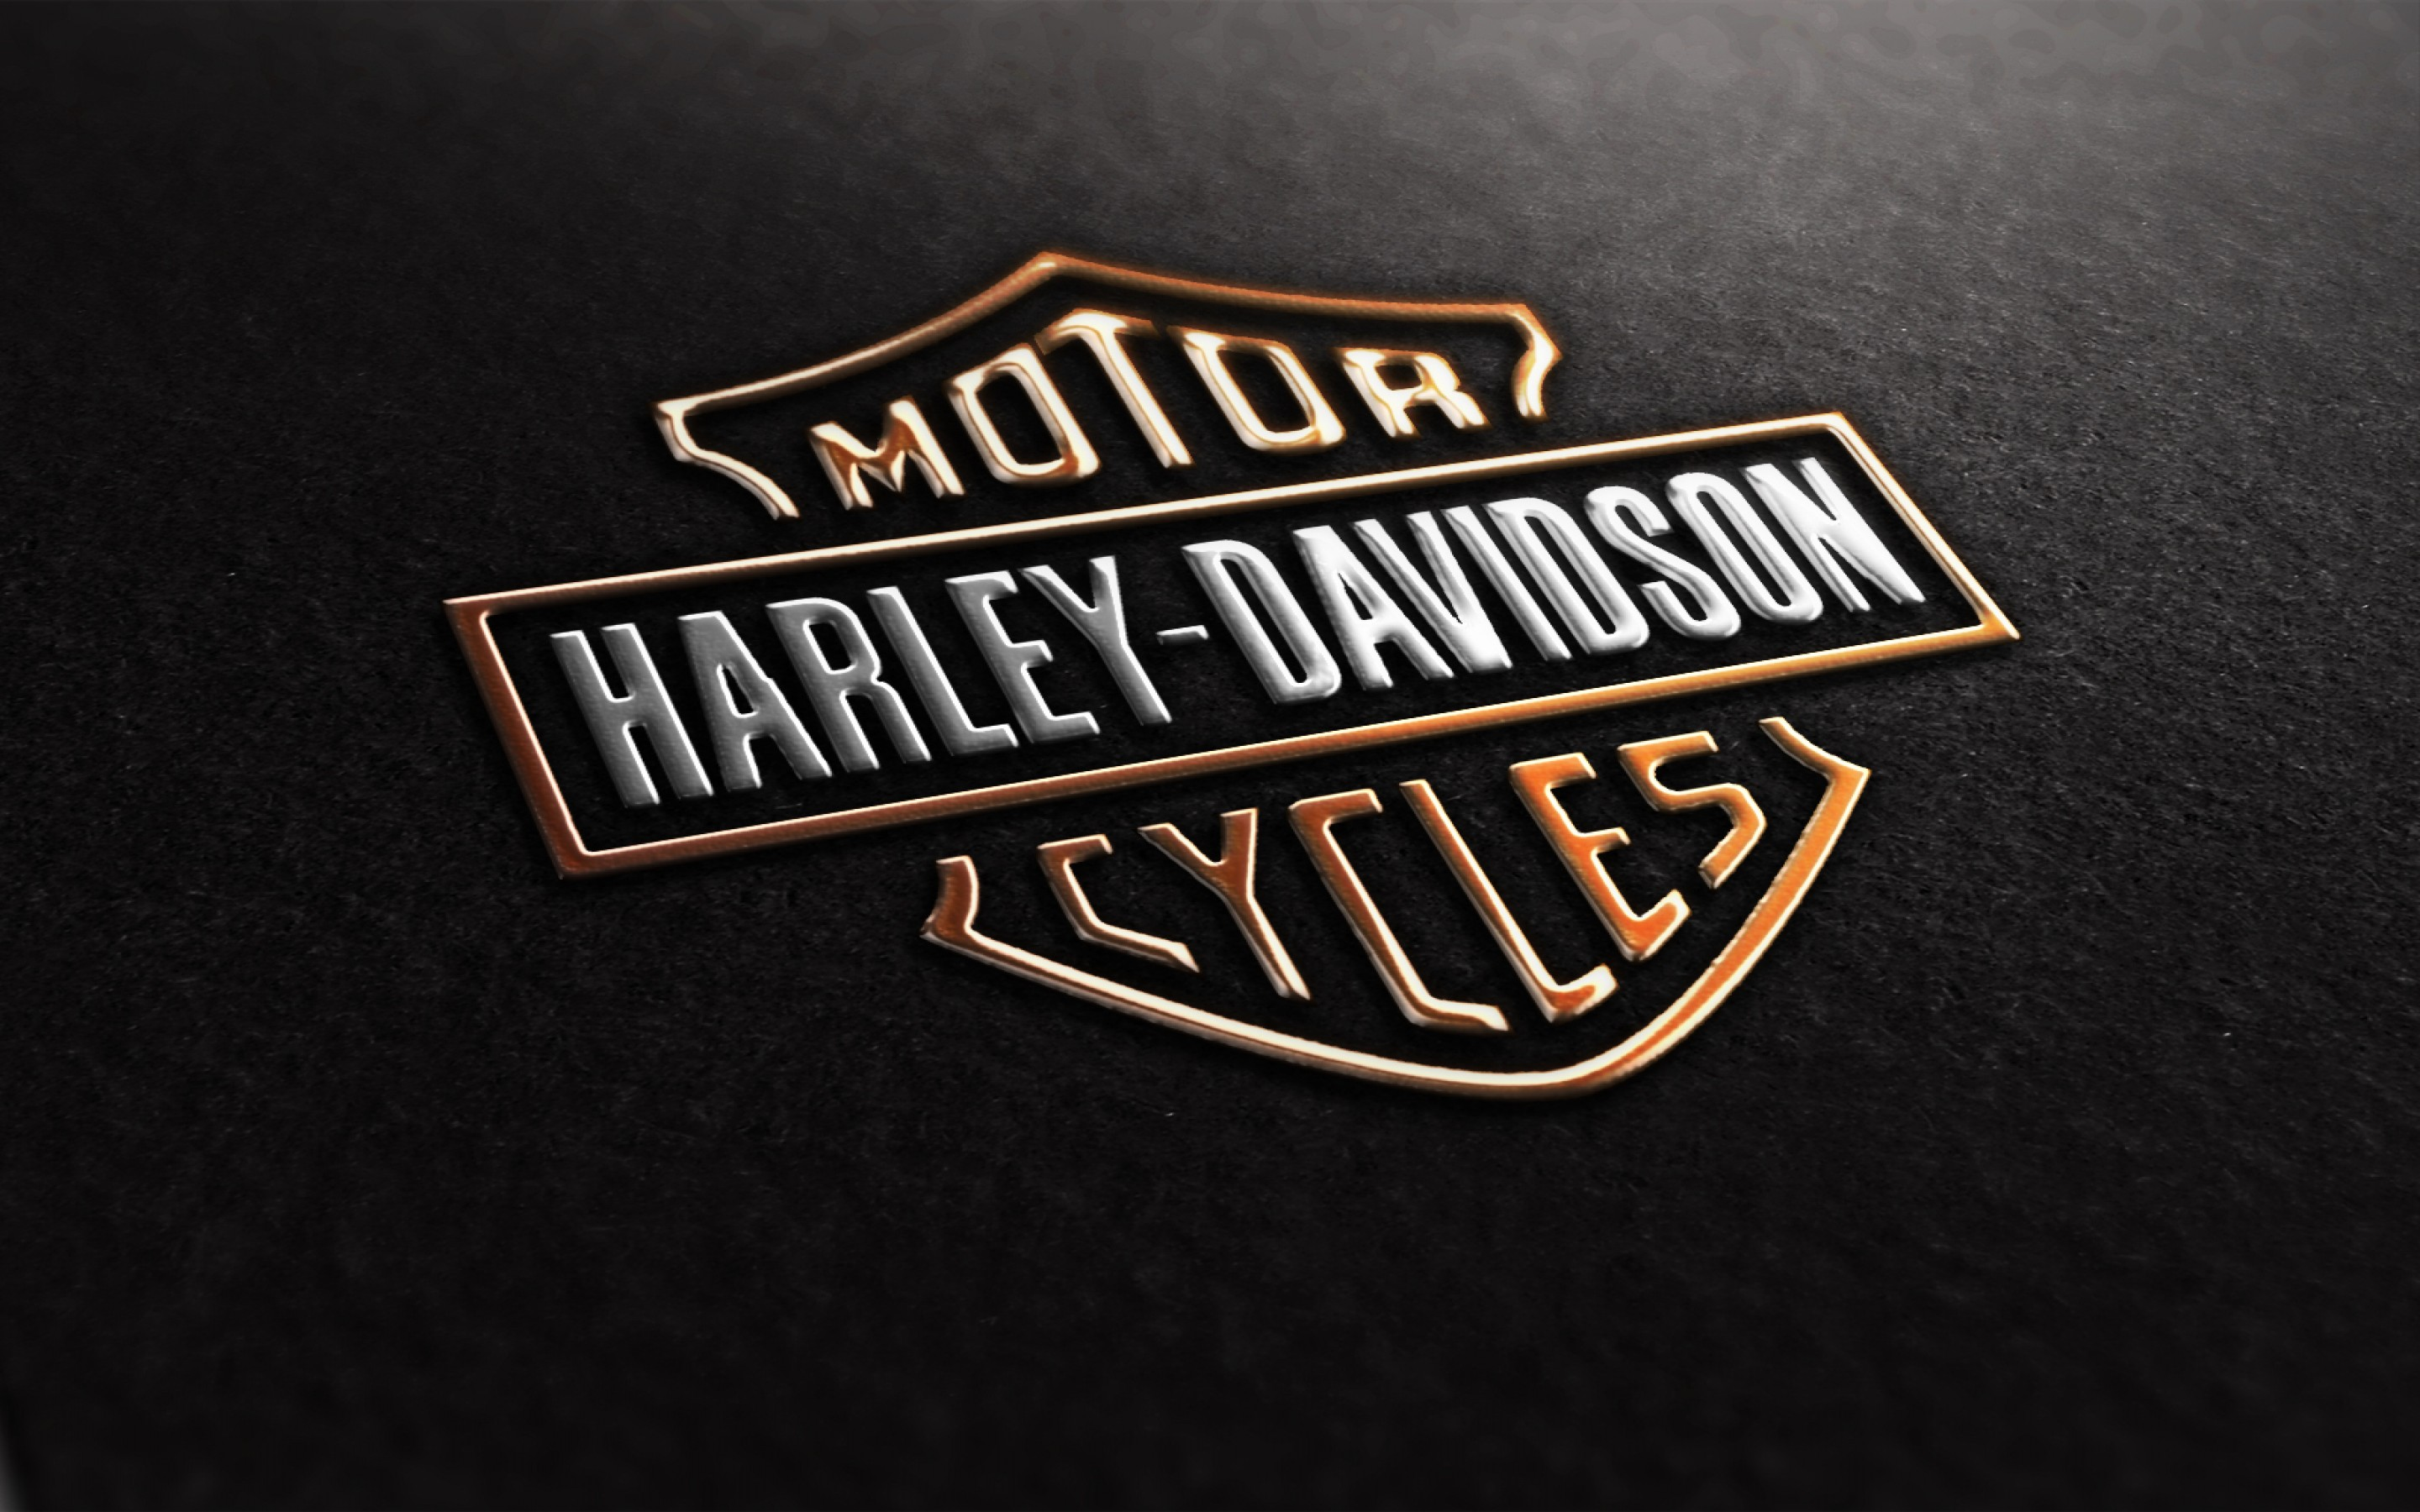 Harley Davidson | Full HD Images